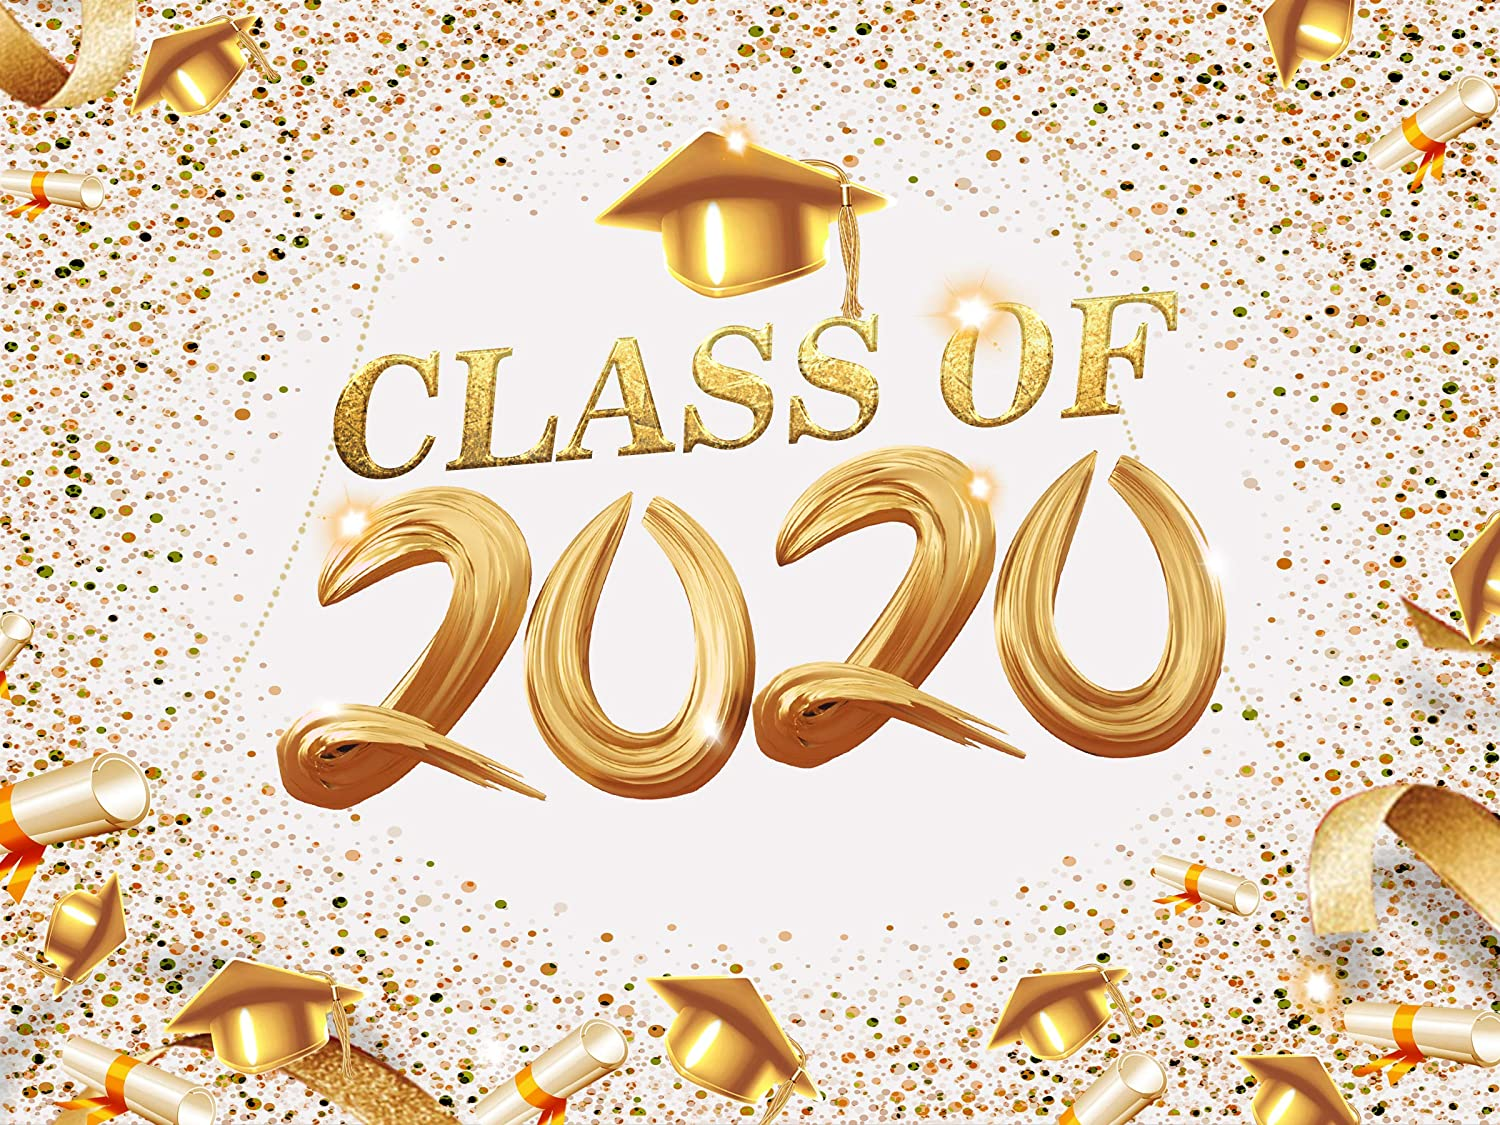 Glitter Gold and White 2020 Graduation Backdrop for Photography Class of 2020 Congrats Grad Party Favor Decorations Photo Booth Props